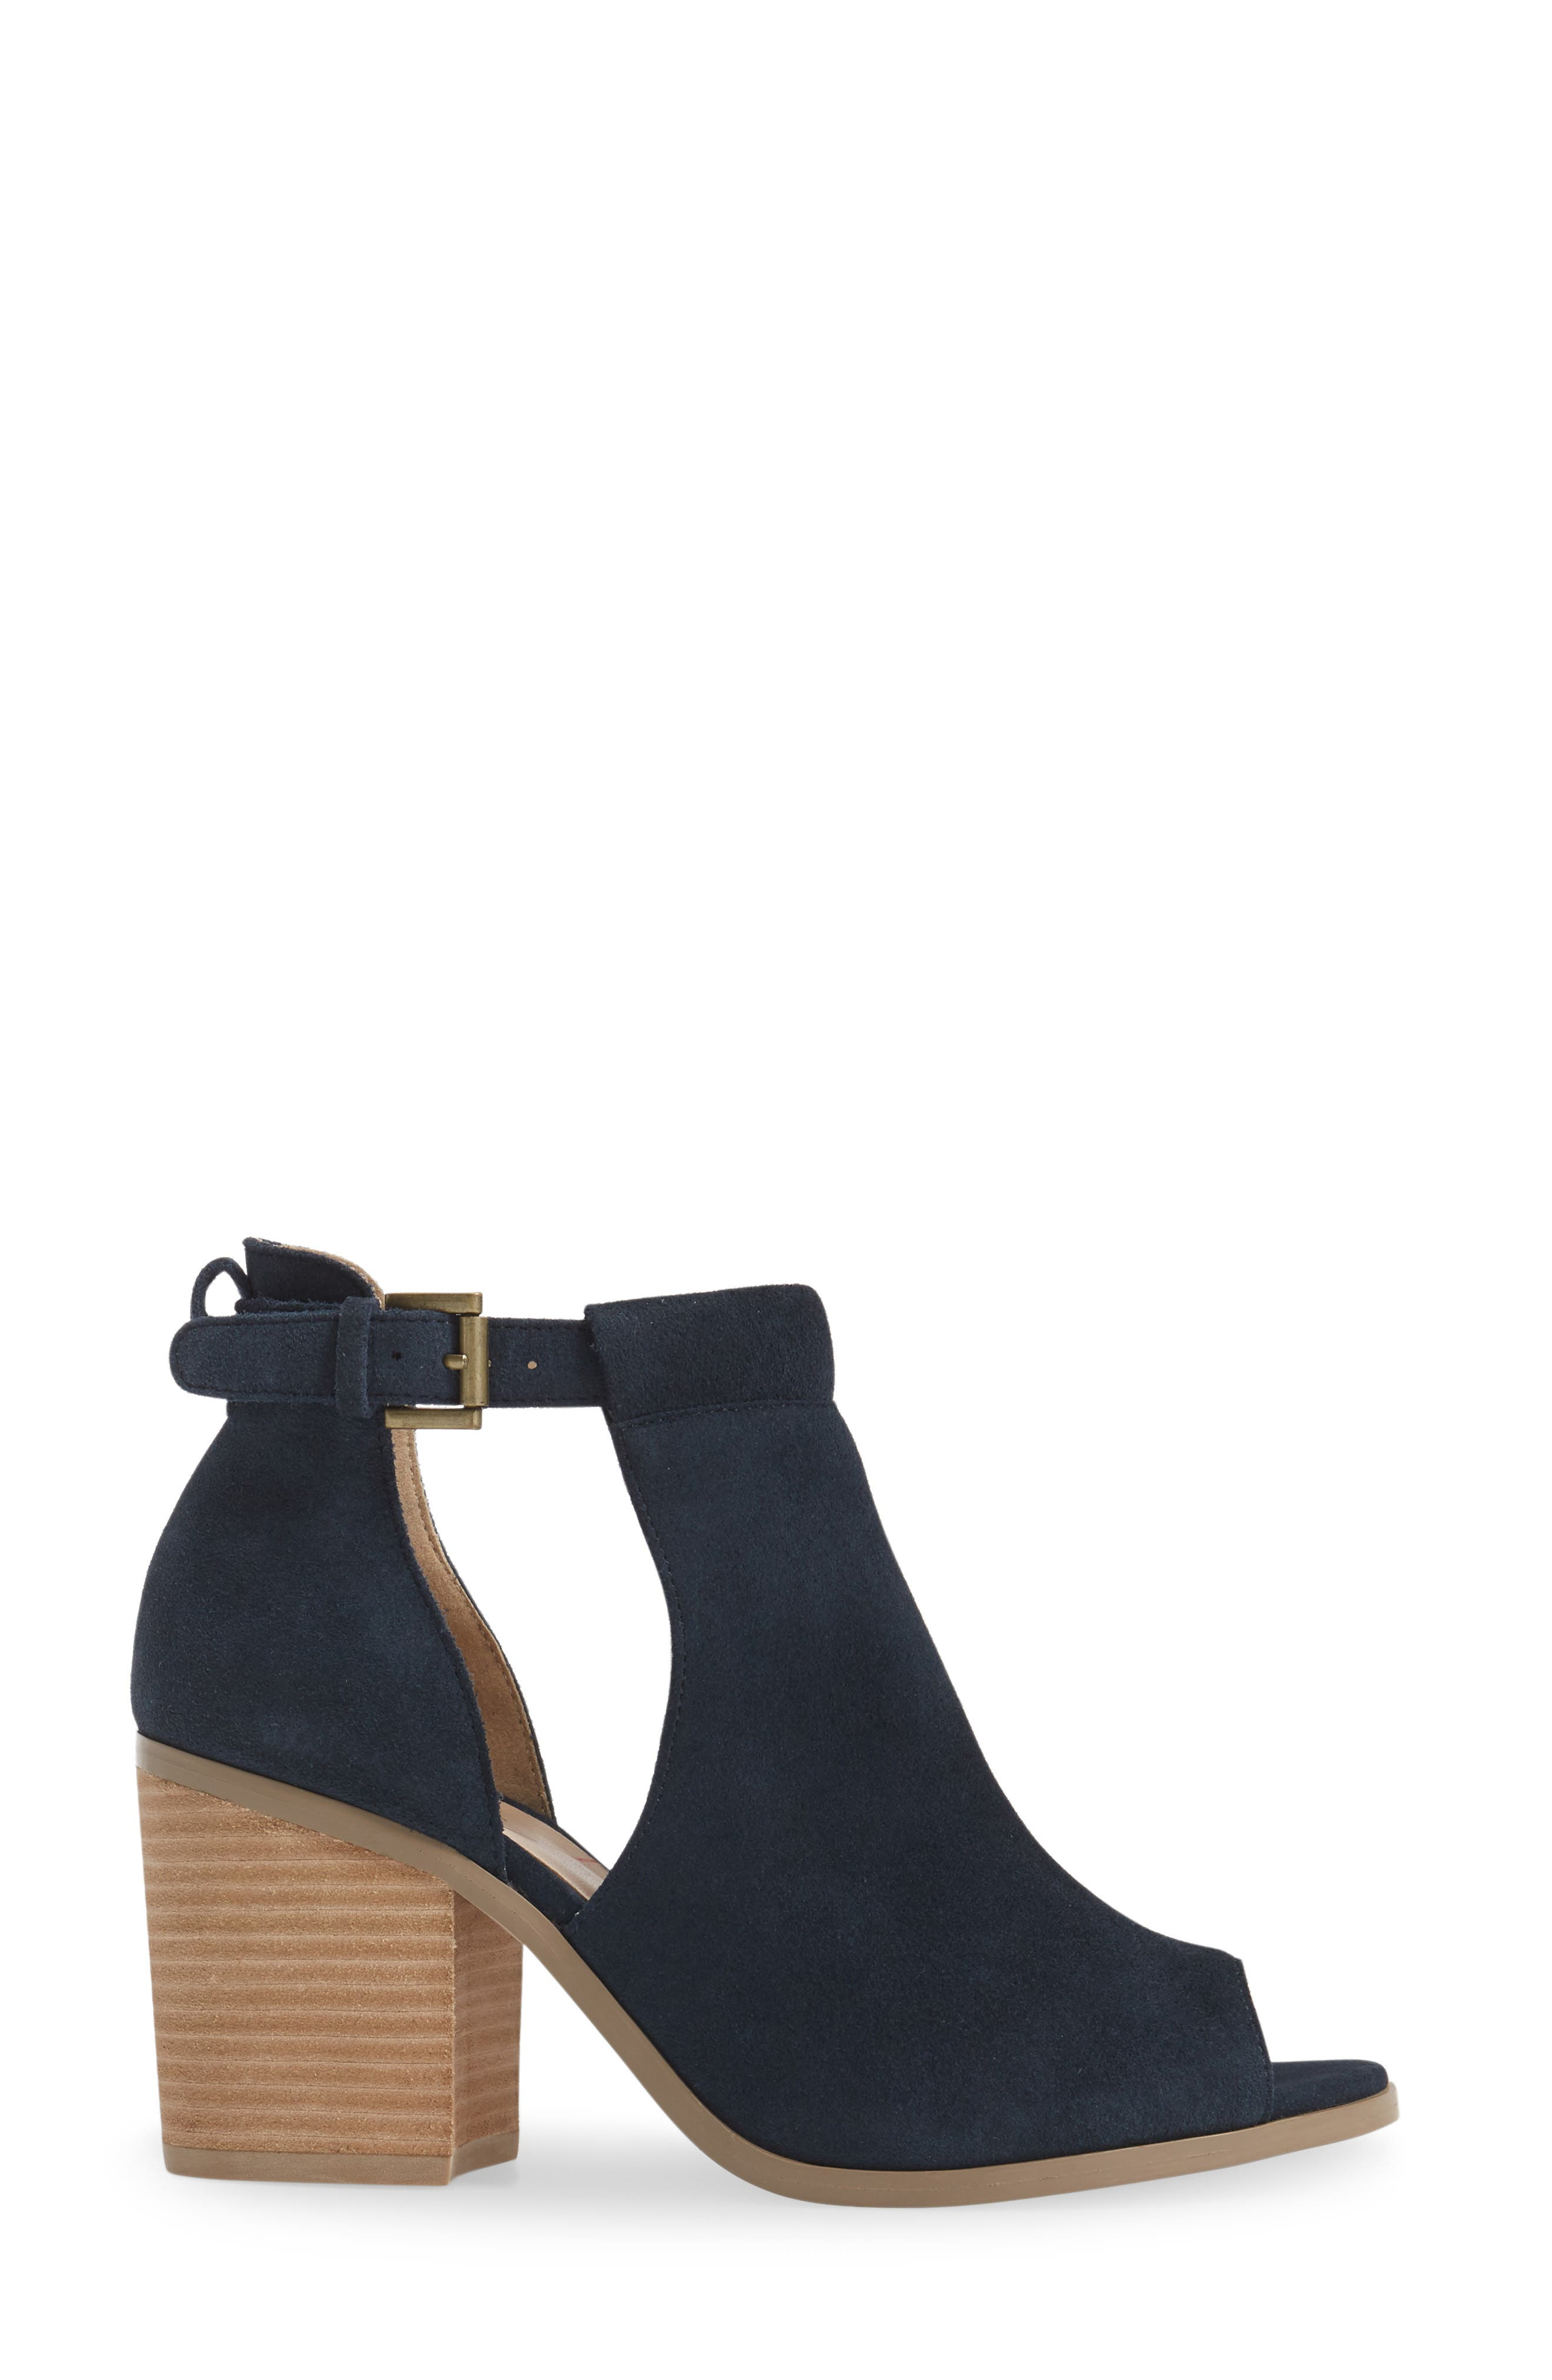 SOLE SOCIETY, 'Ferris' Open Toe Bootie, Alternate thumbnail 3, color, INK SUEDE